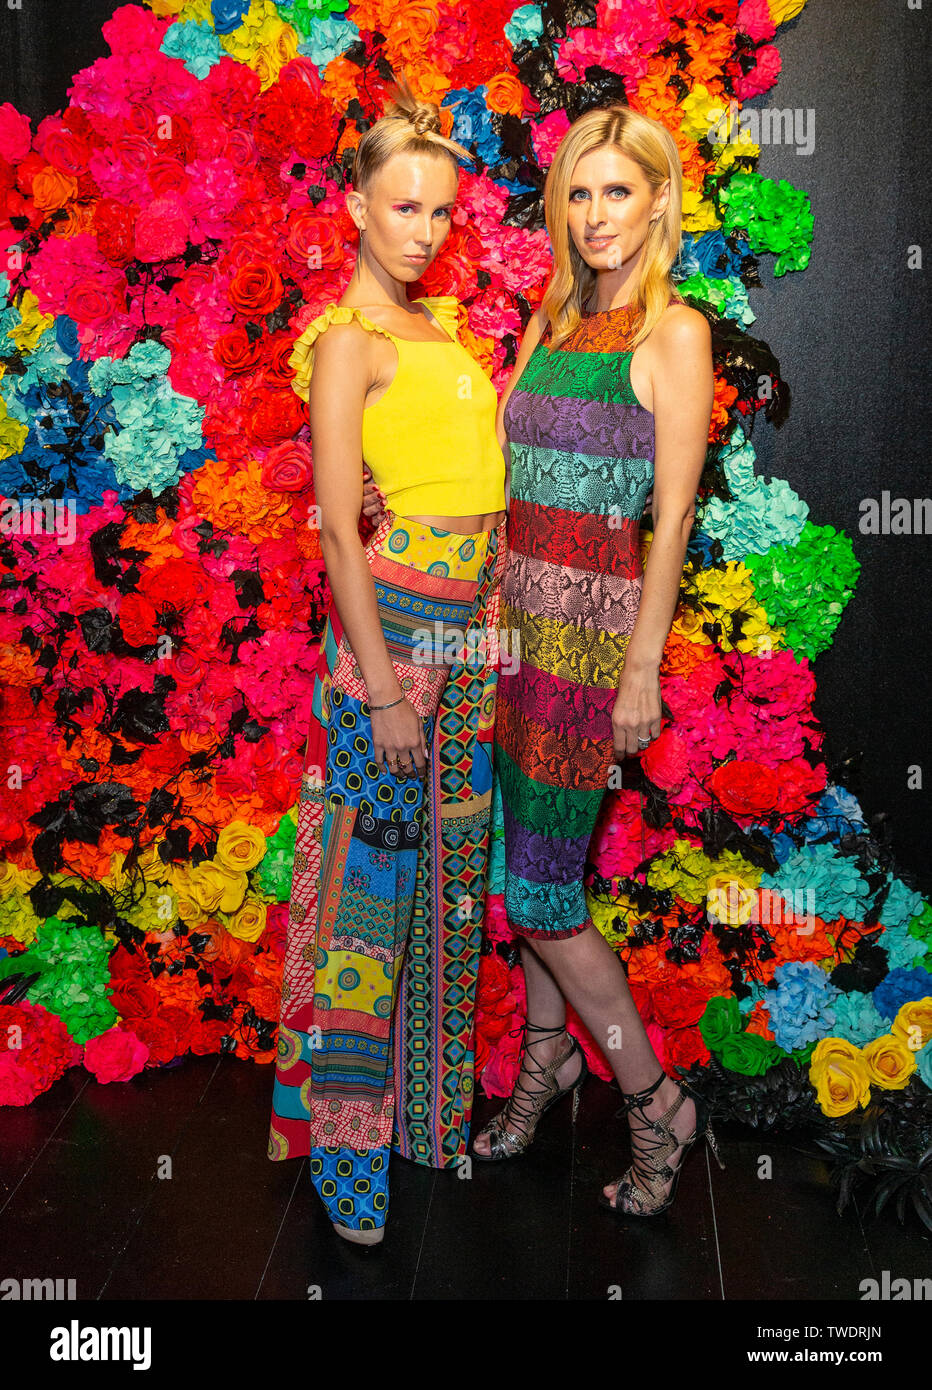 New York, United States. 18th June, 2019. Tessa Hilton, Nicky Hilton Rothschild attend the Summer Kickoff Party for WorldPride hosted by Alice   Olivia by Stacey Bendet and the Trevor Project at Industria Studio Credit: Lev Radin/Pacific Press/Alamy Live News - Stock Image